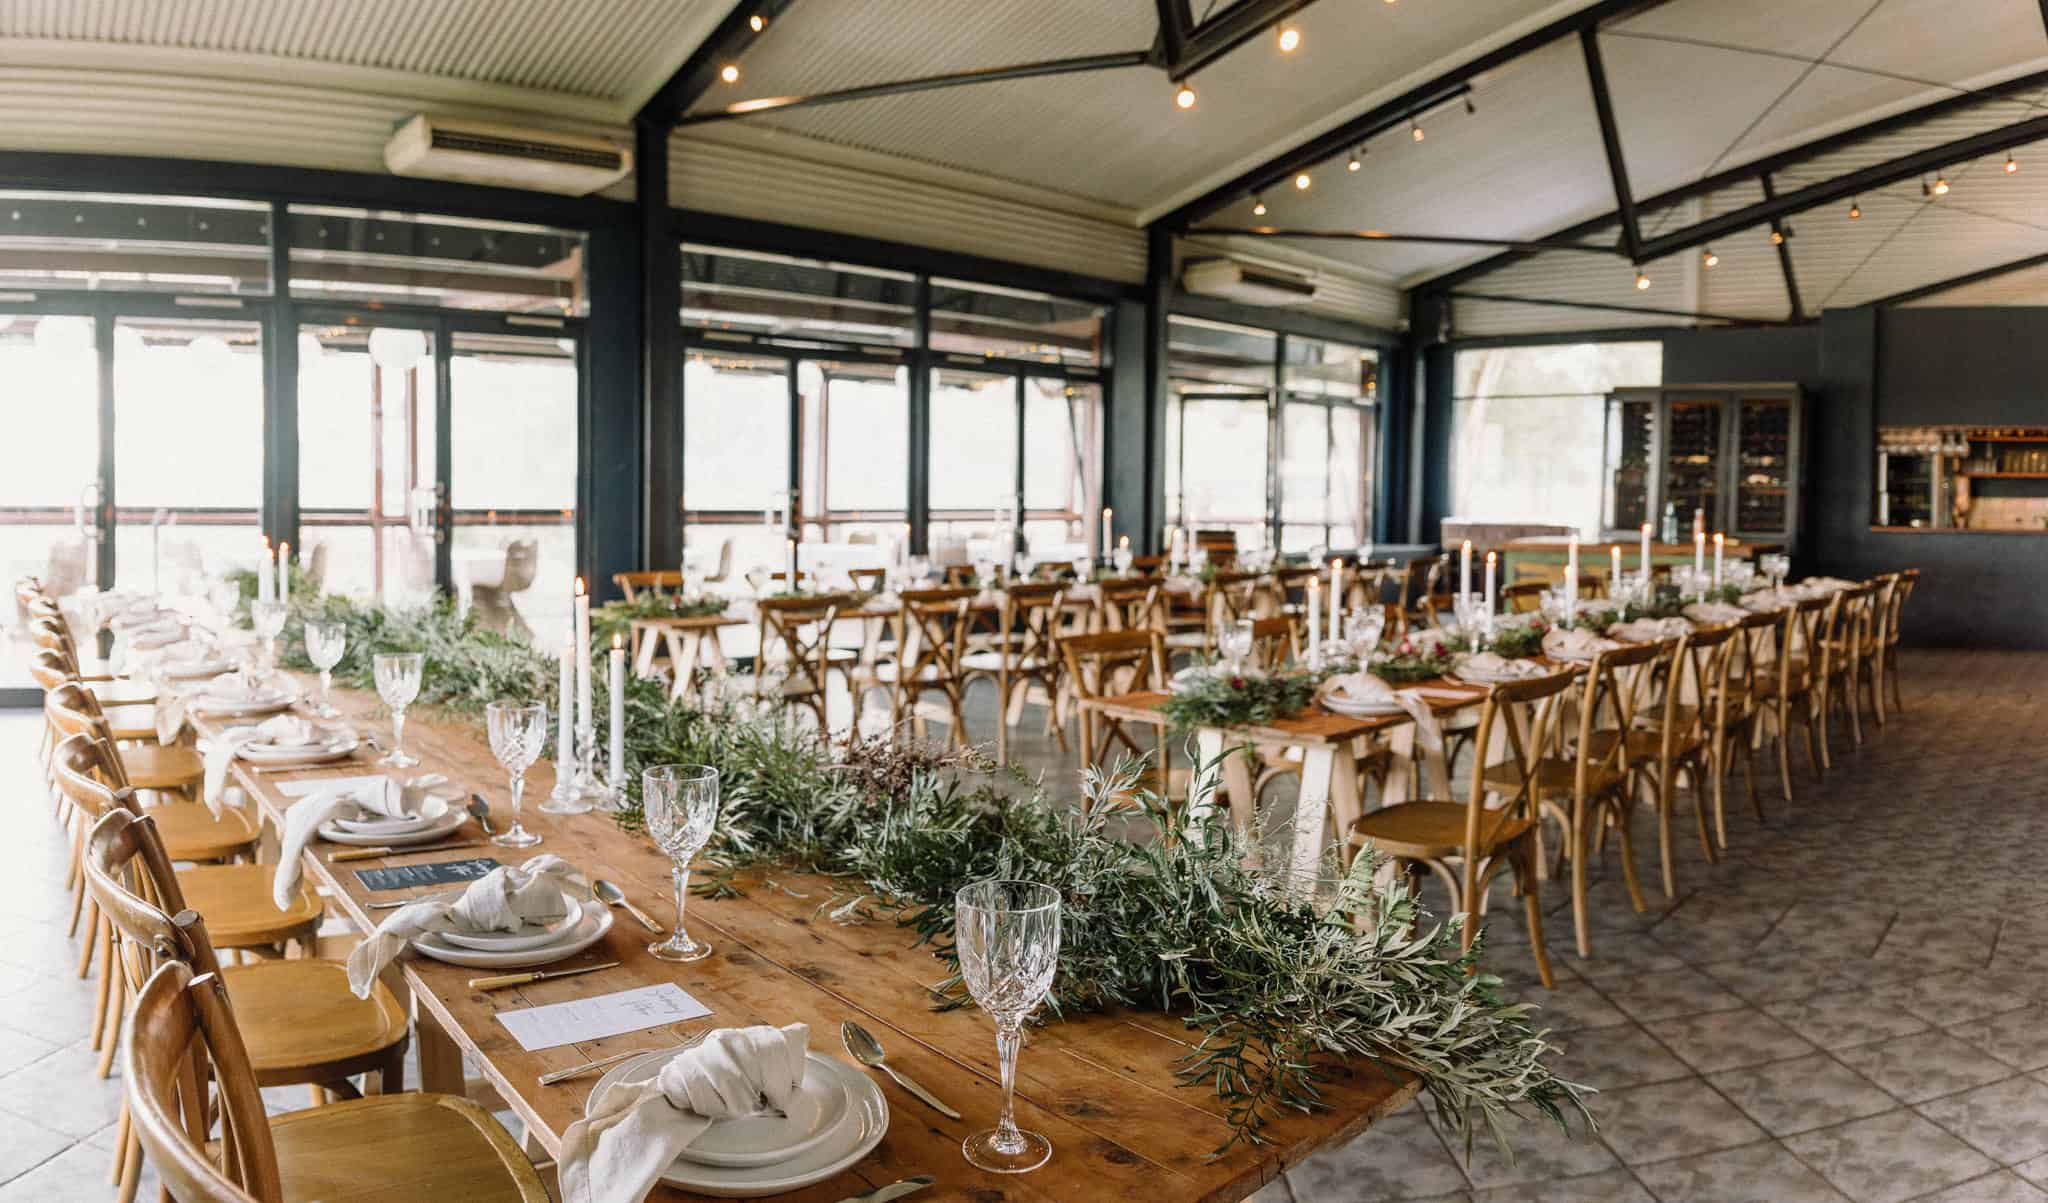 Rustic wedding reception setup with tressel tables and foilage at Estate Tuscany Captured by James White Hunter Valley Wedding Photographer